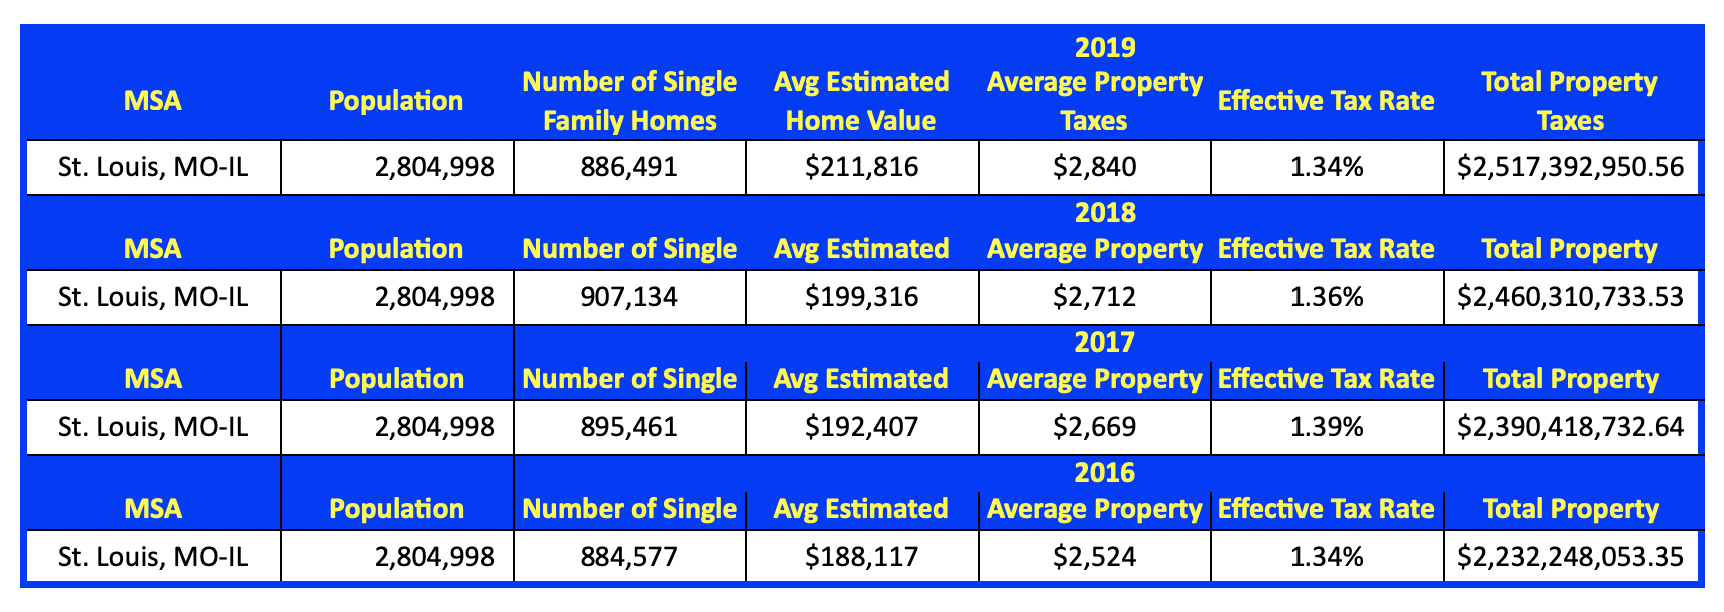 St Louis MSA Effective Property Tax Rates - 2016 - 2019